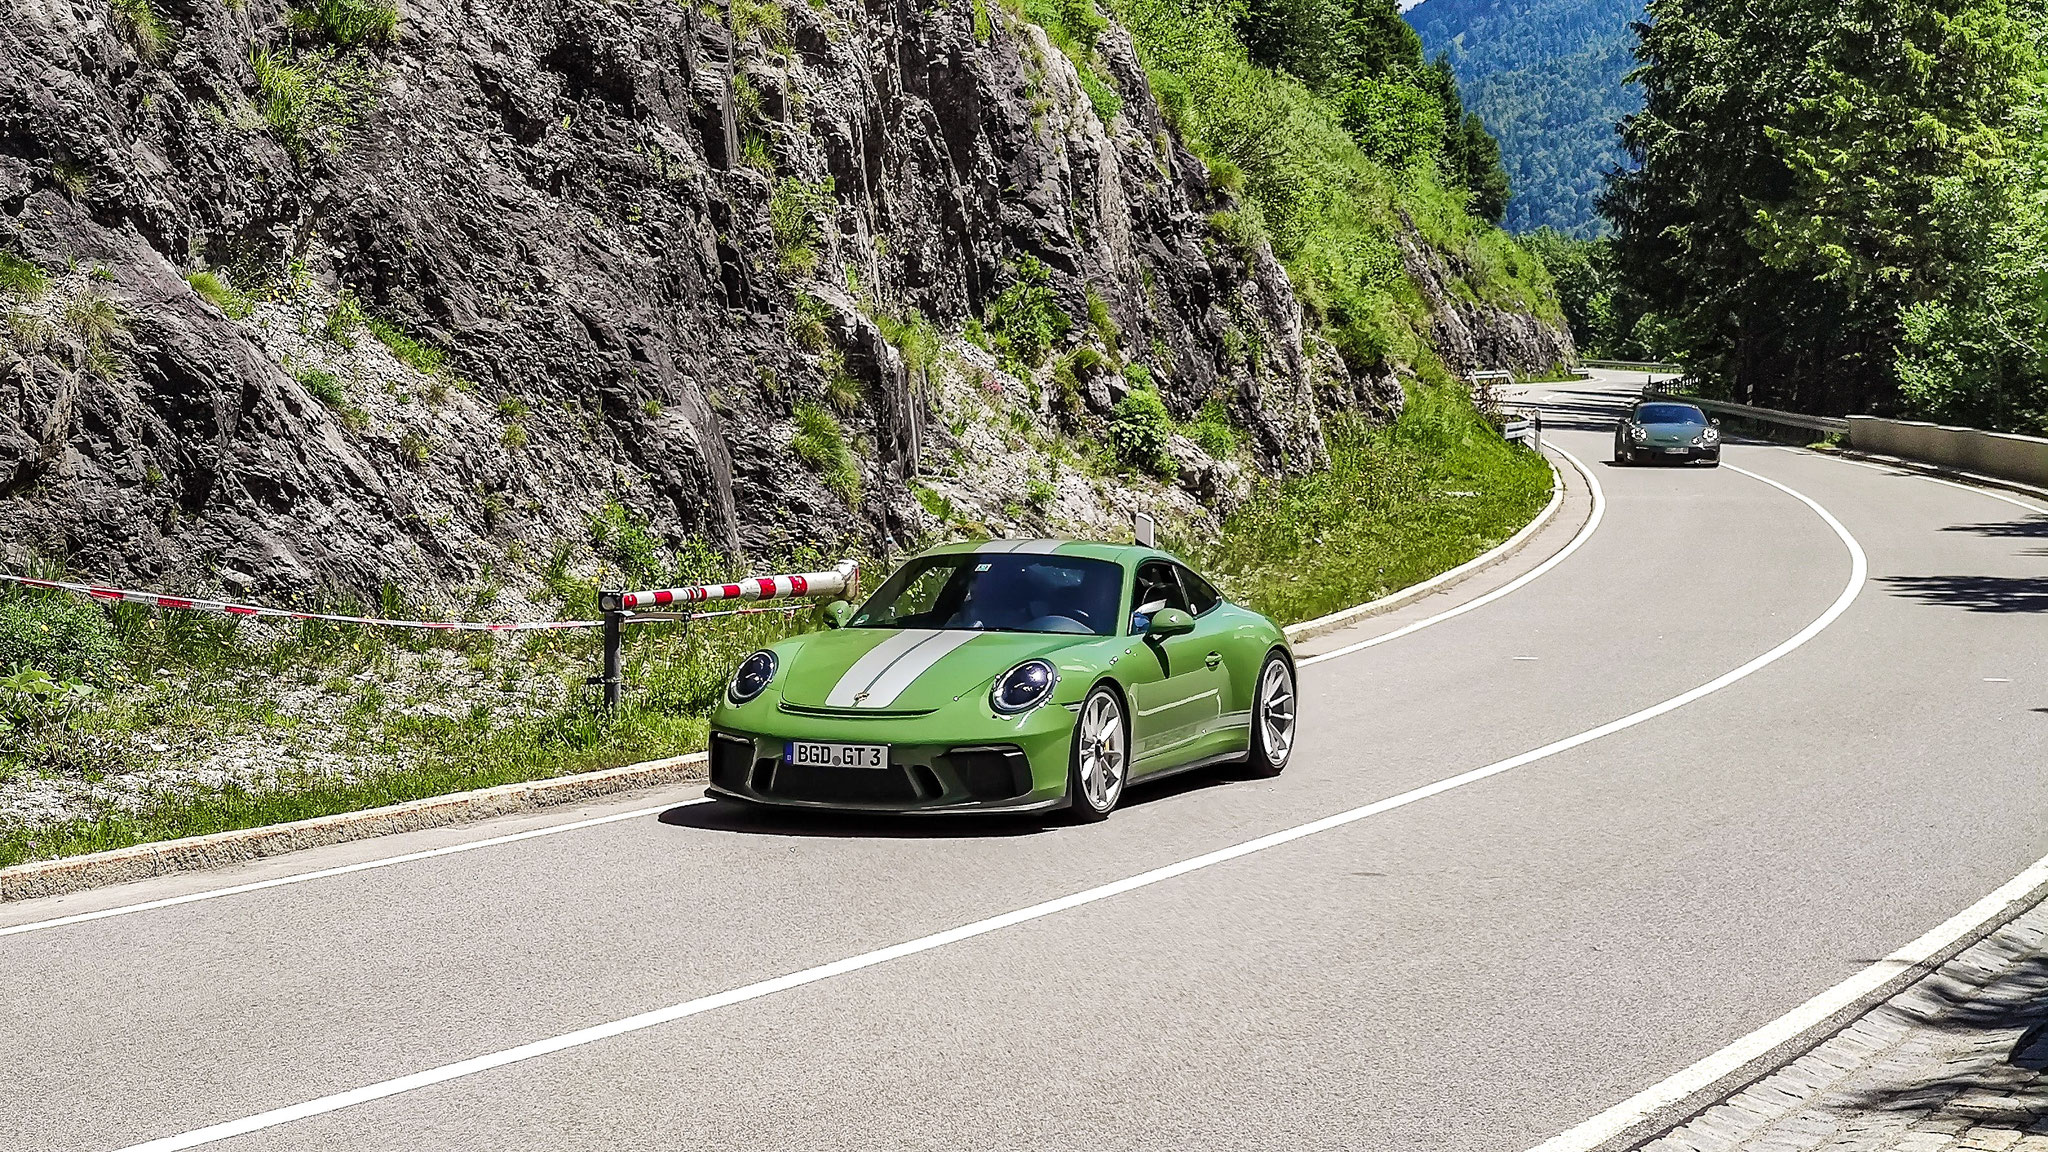 Porsche 991 GT3 Touring Package - BGD-GT-3